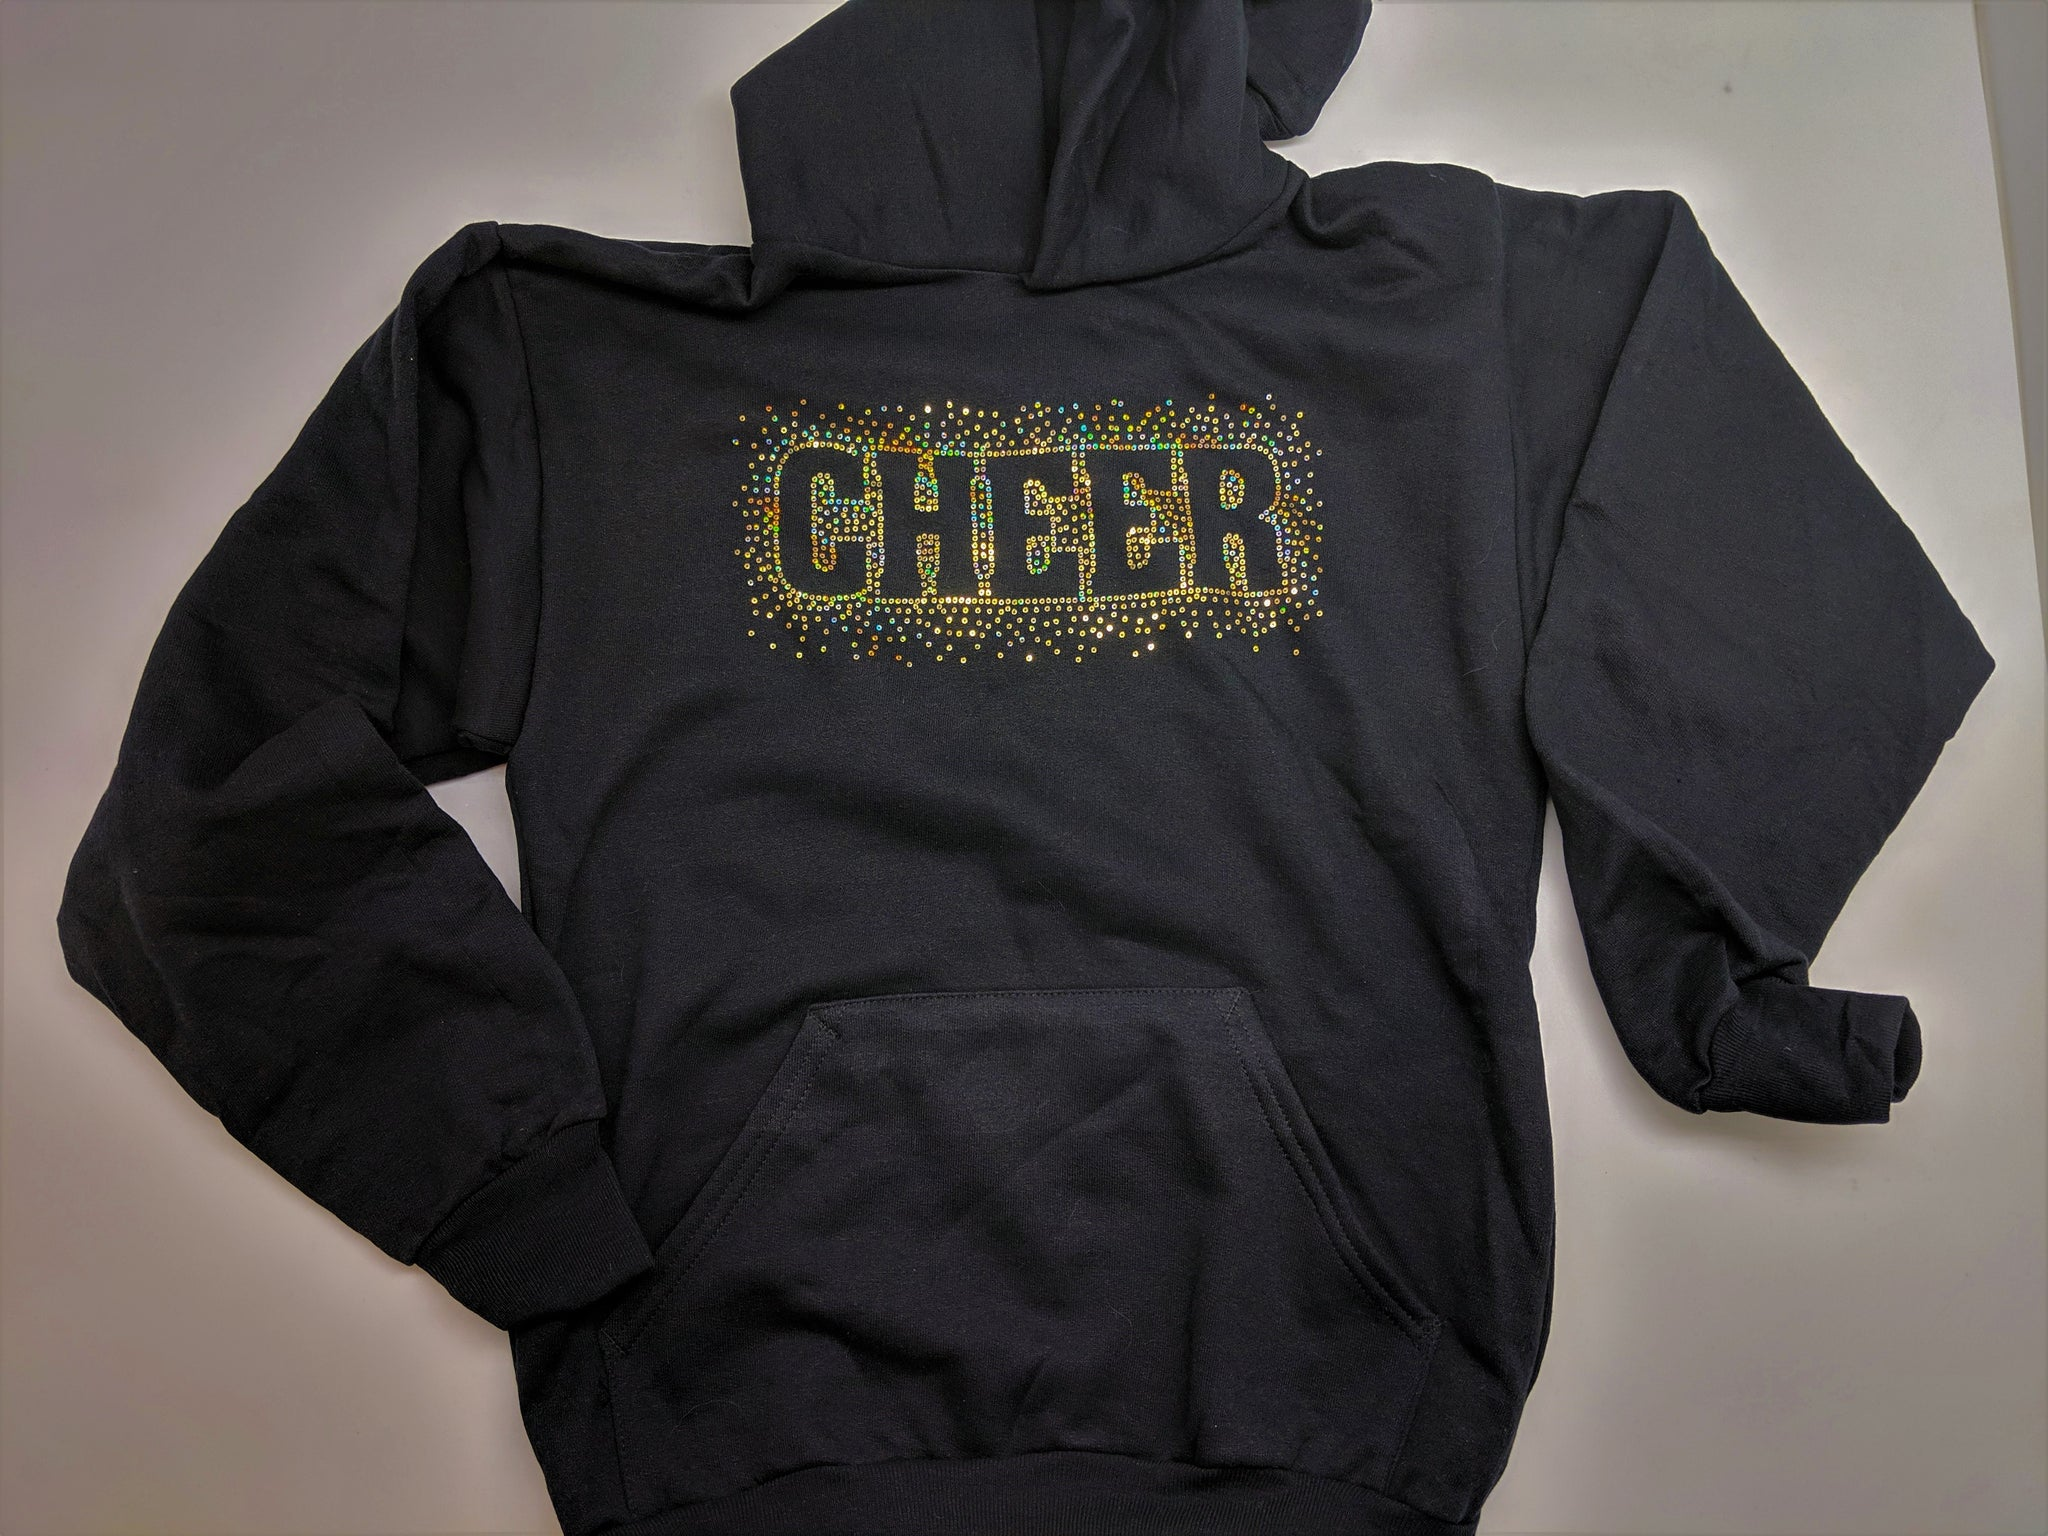 Cheer Sequin Sweatshirt